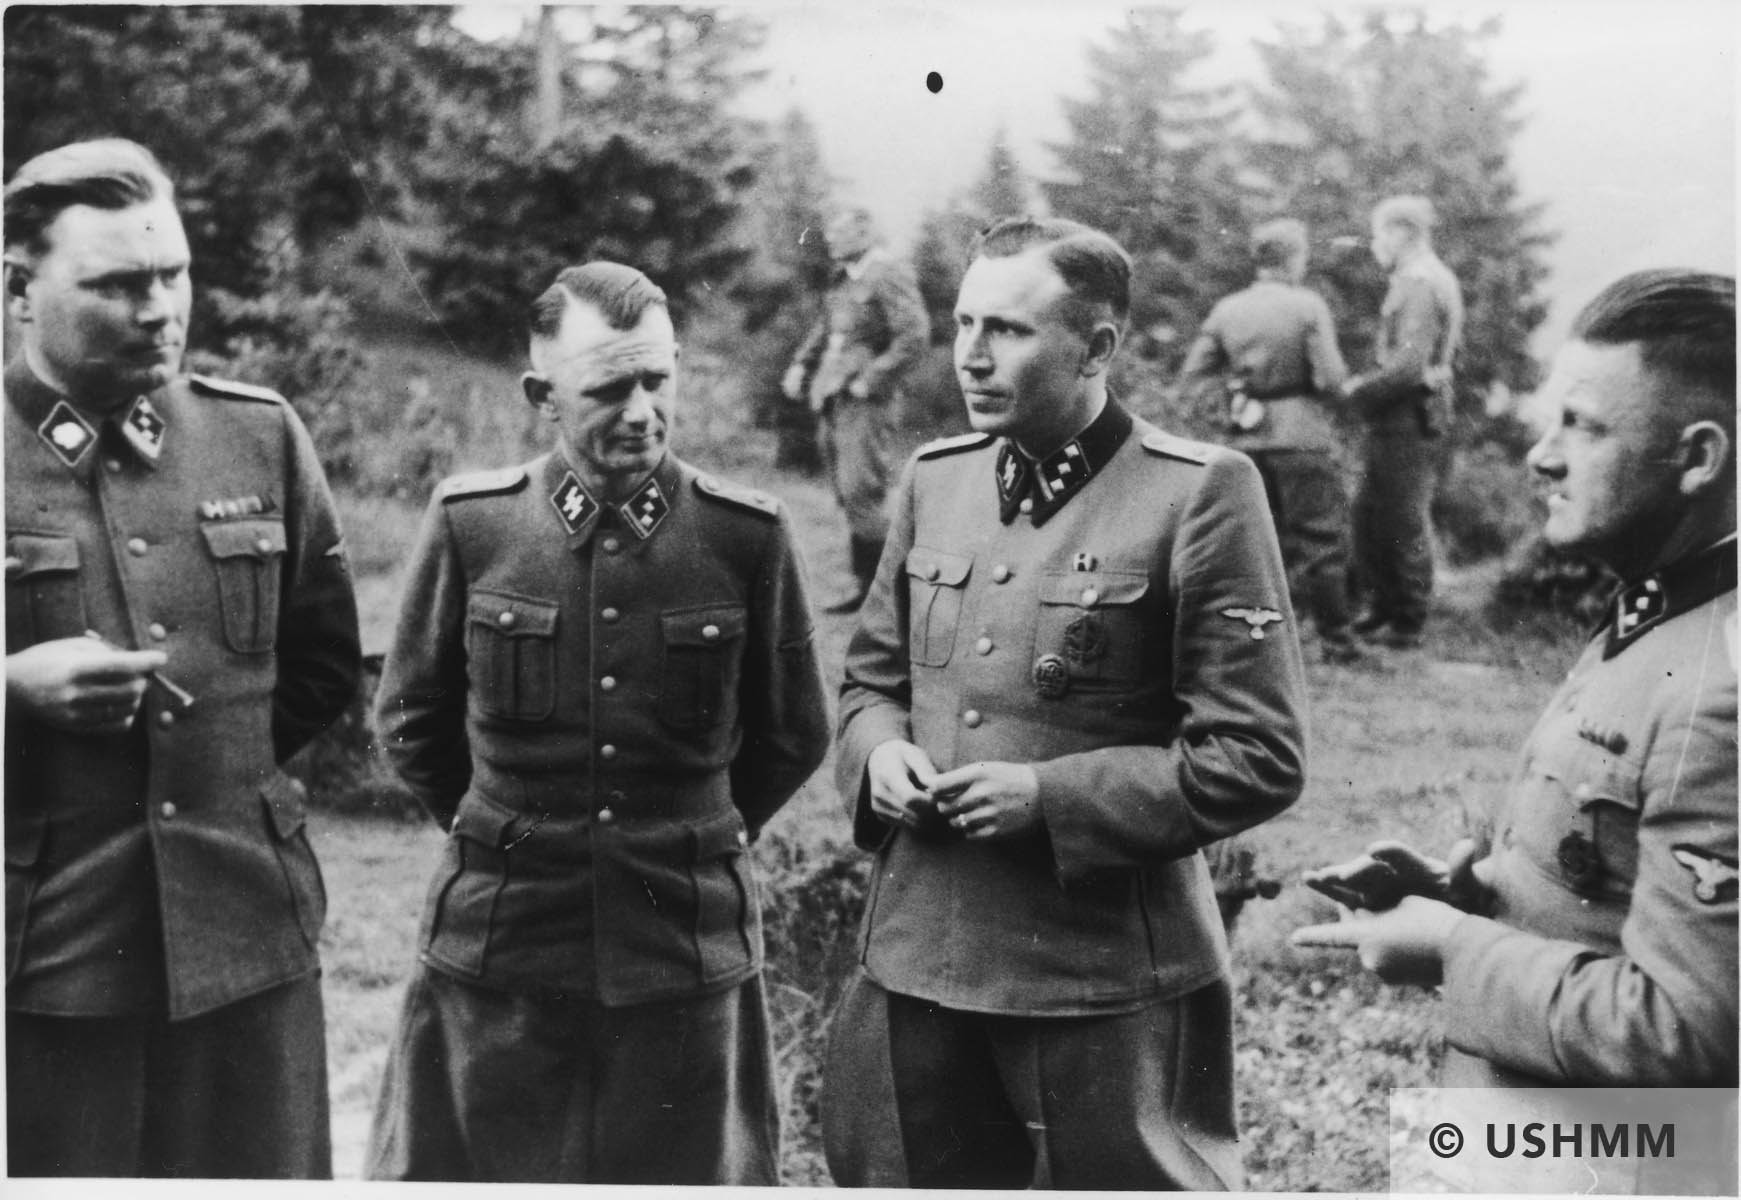 A group of SS officers gather at Solahütte. USHMM 34756